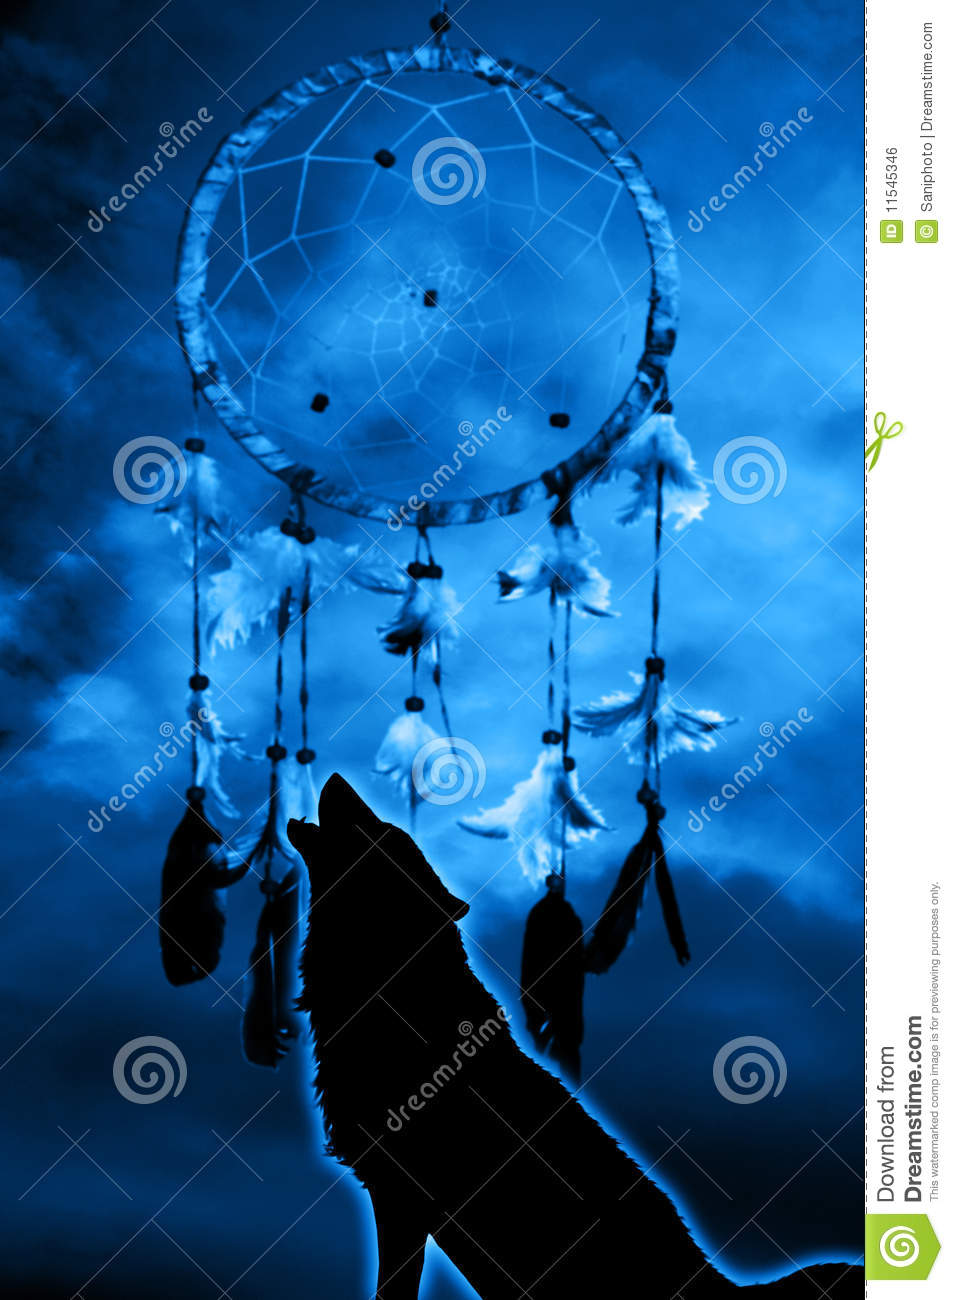 Cute Dreamcatcher Wallpaper Wolf And Dream Catcher Stock Illustration Image Of Nature